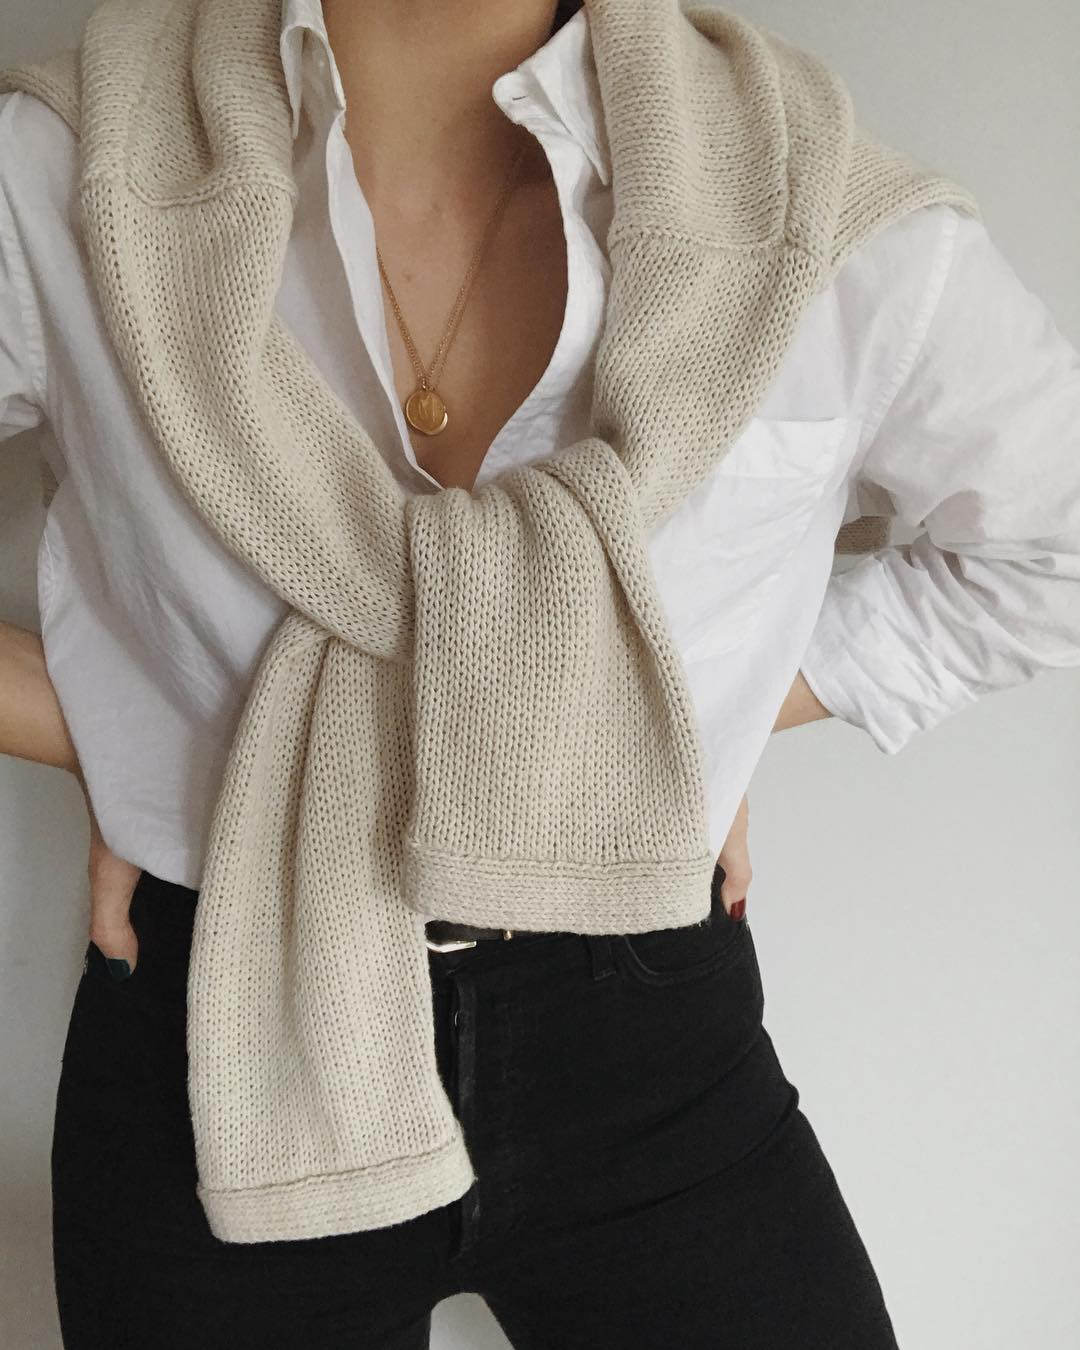 Casual-Chic Fall Outfit Inspiration — Beige Sweater Tied Over the Shoulders, White Shirt, Black Jeans, Coin Necklaces